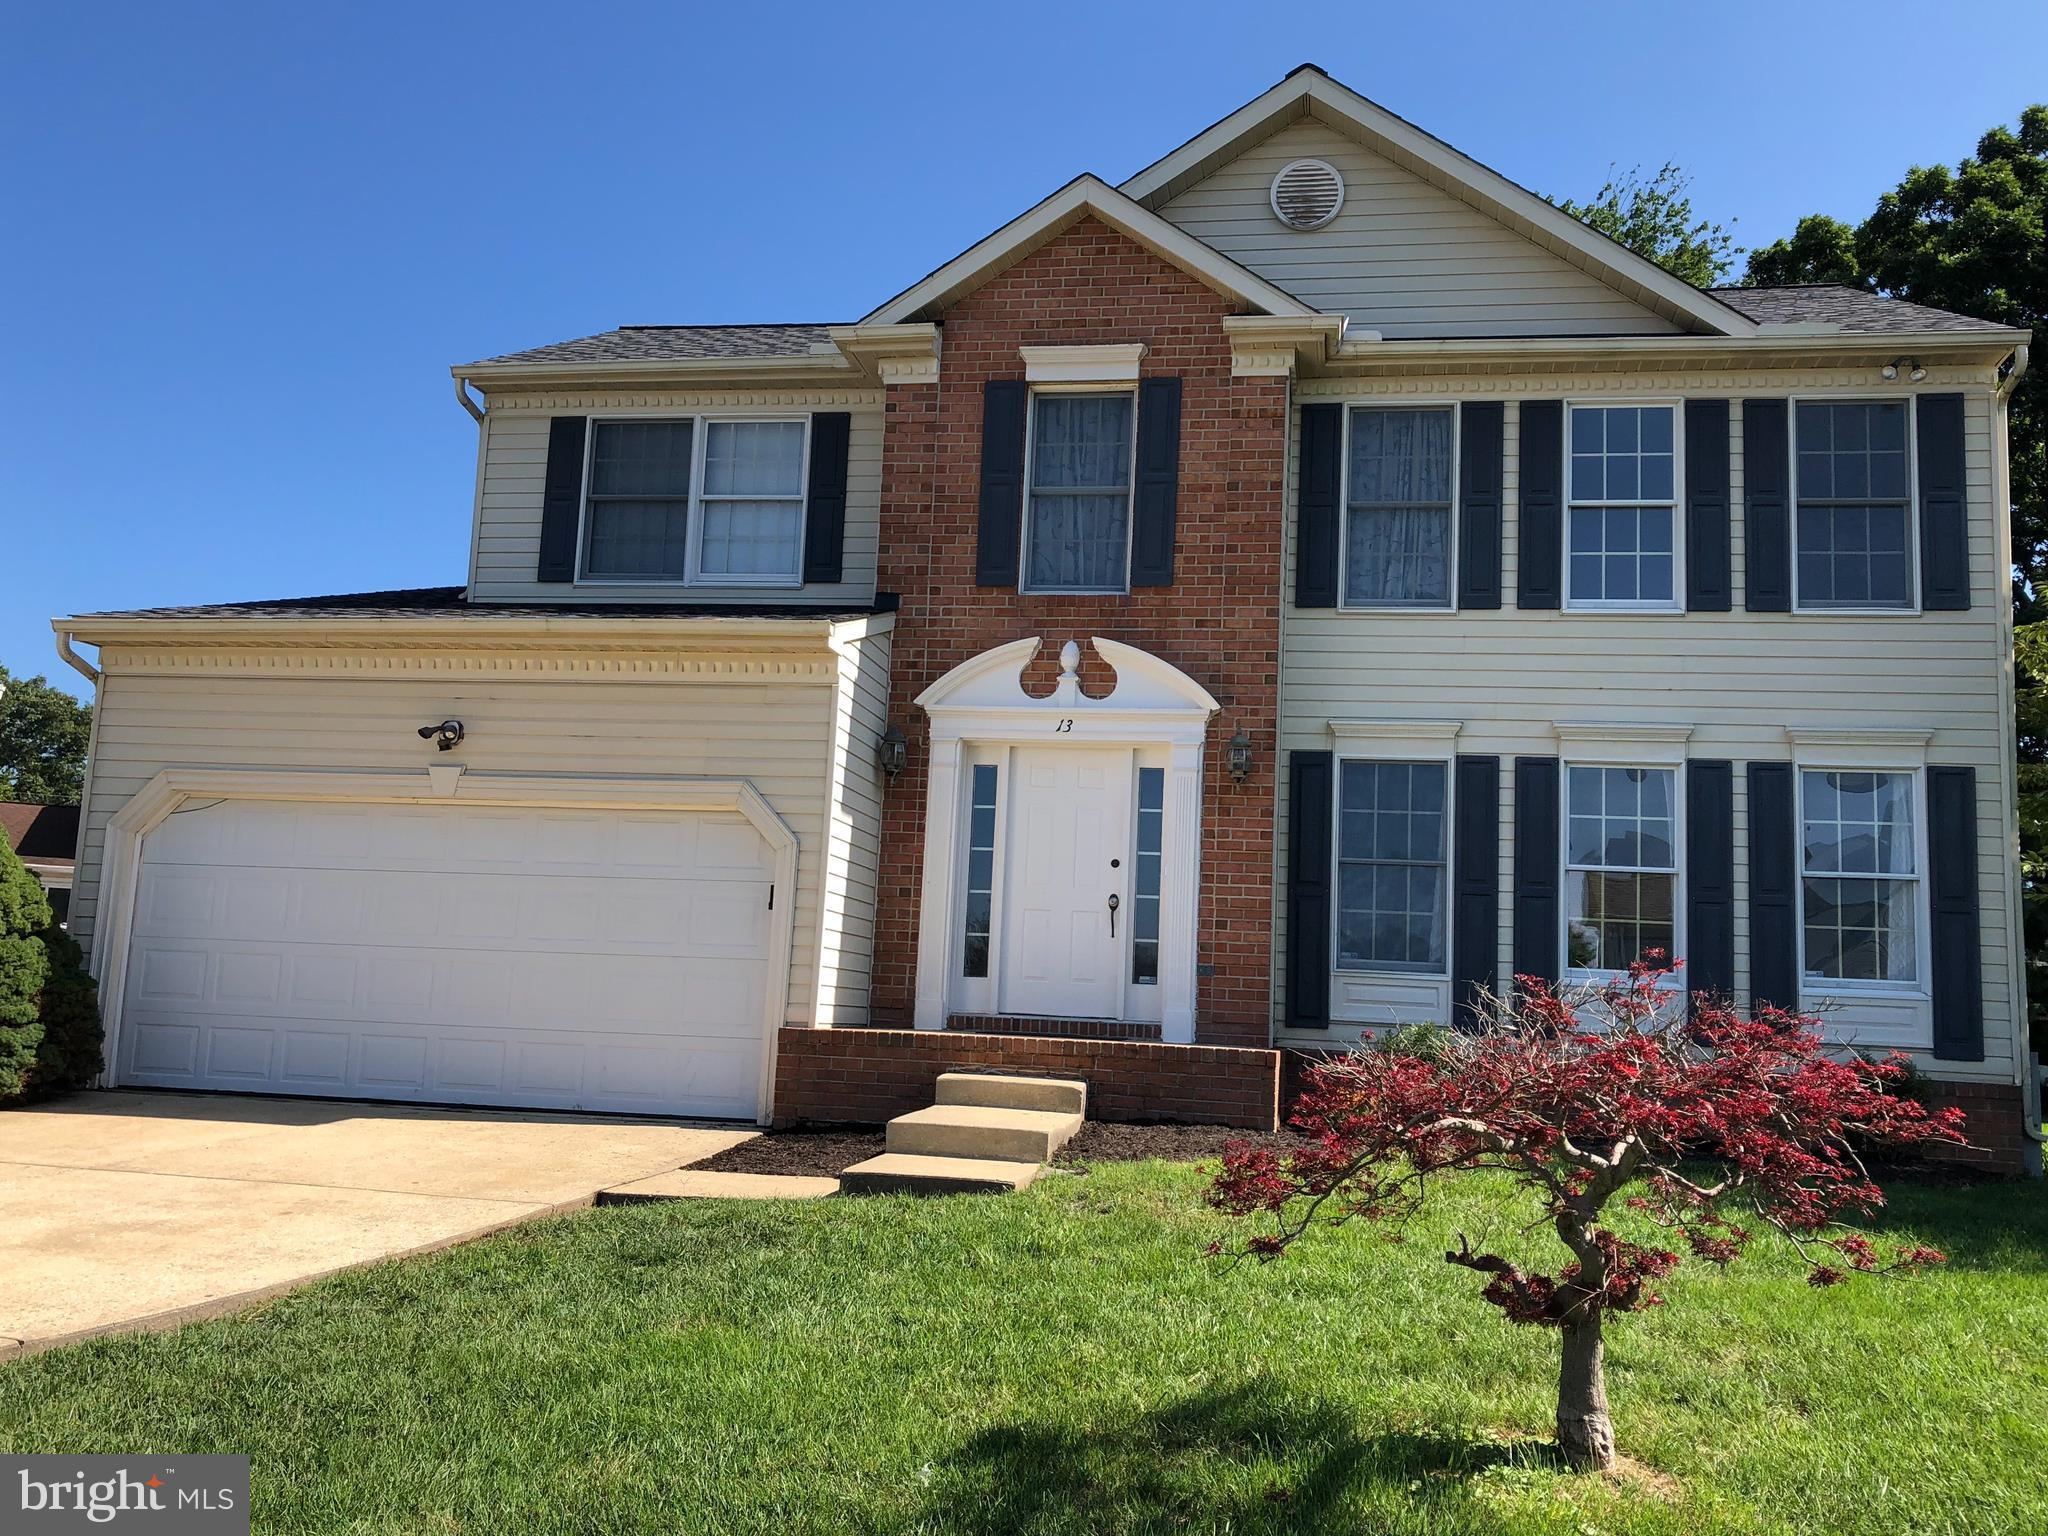 13 SYMPHONY WOODS COURT, BALTIMORE, MD 21236